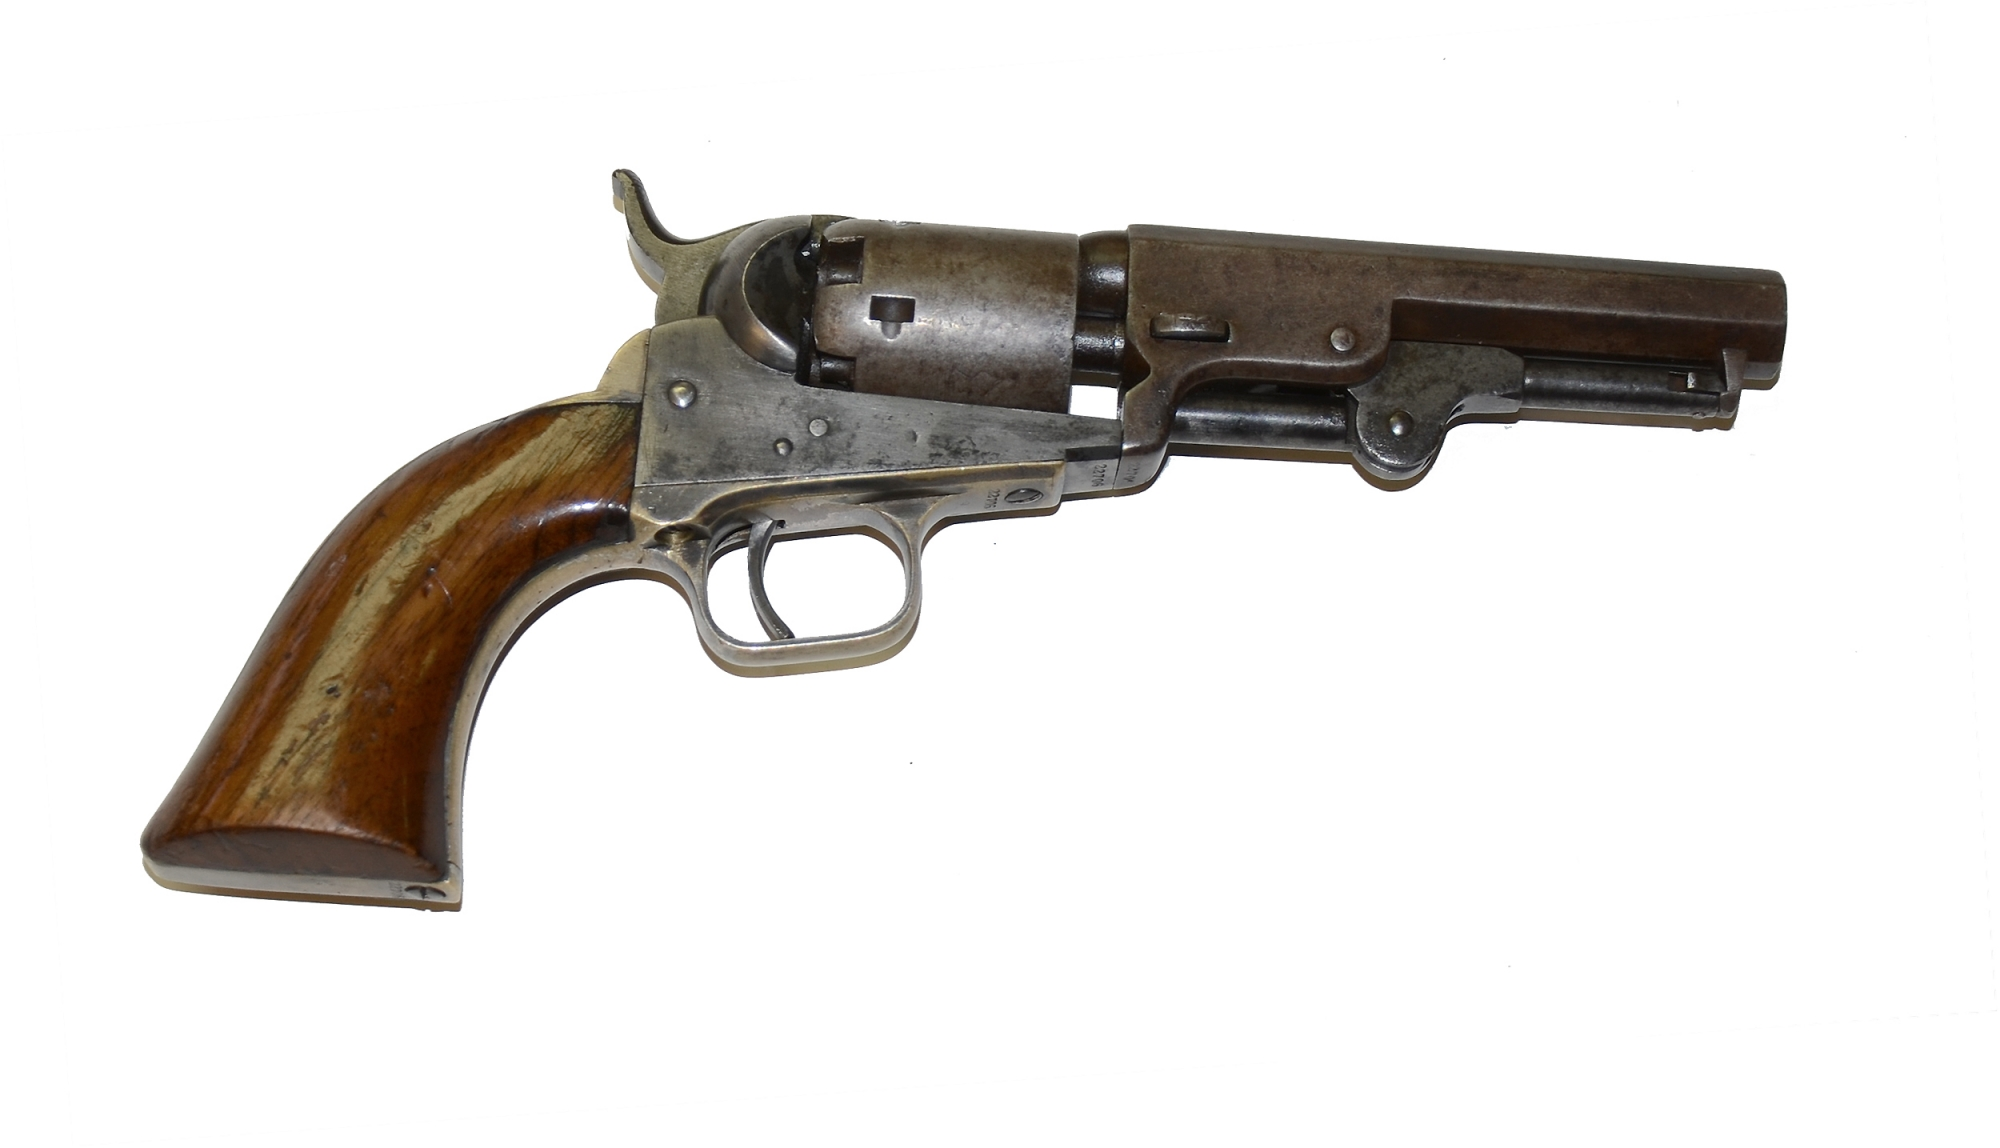 POCKET MODEL 1849 COLT REVOLVER WITH MATCHING SERIAL NUMBERS